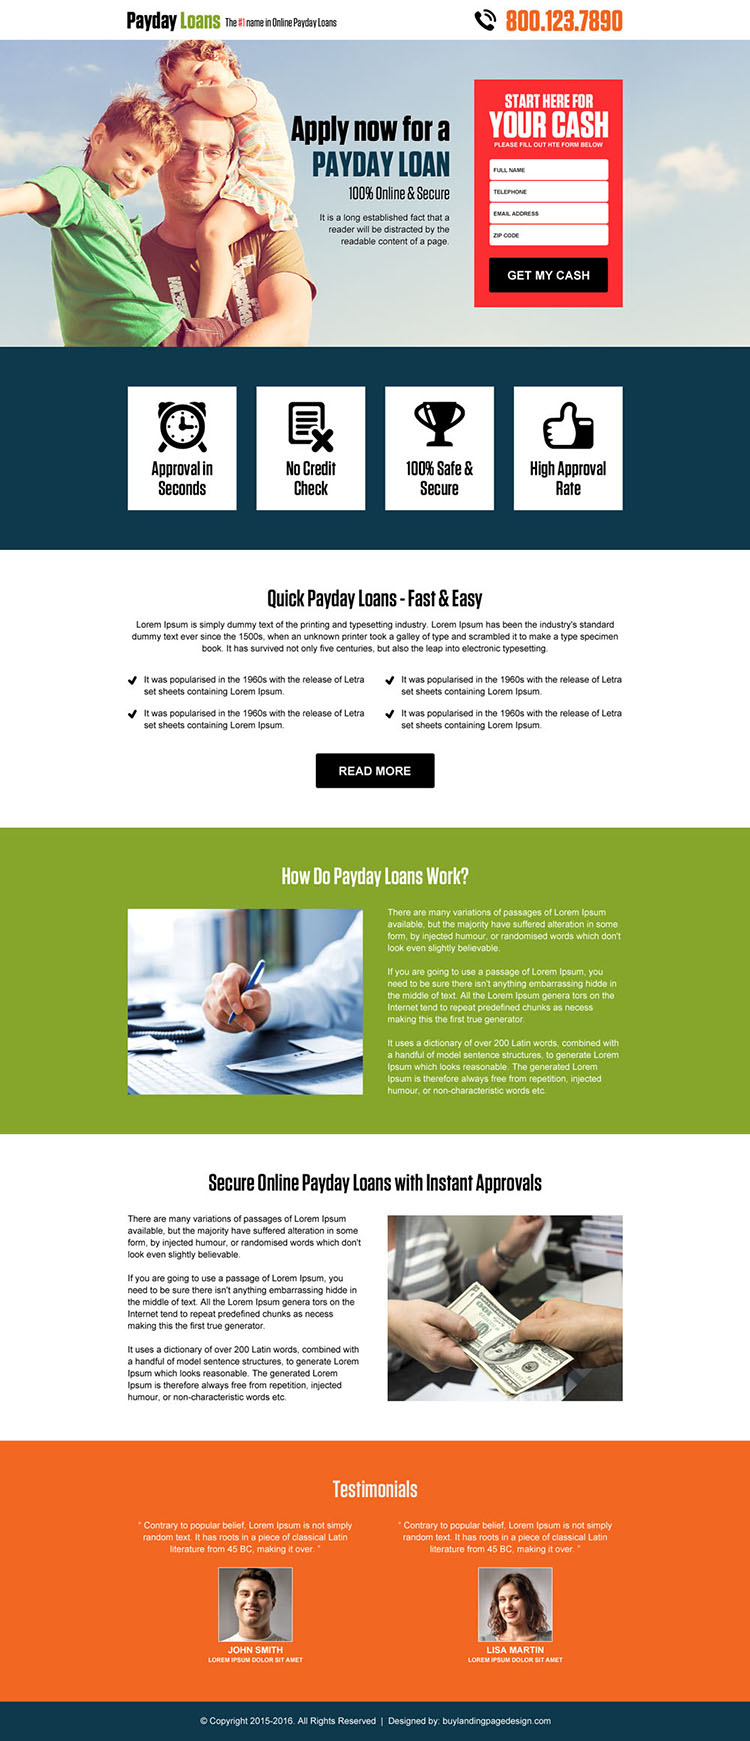 online payday cash loan lead capturing landing page design template